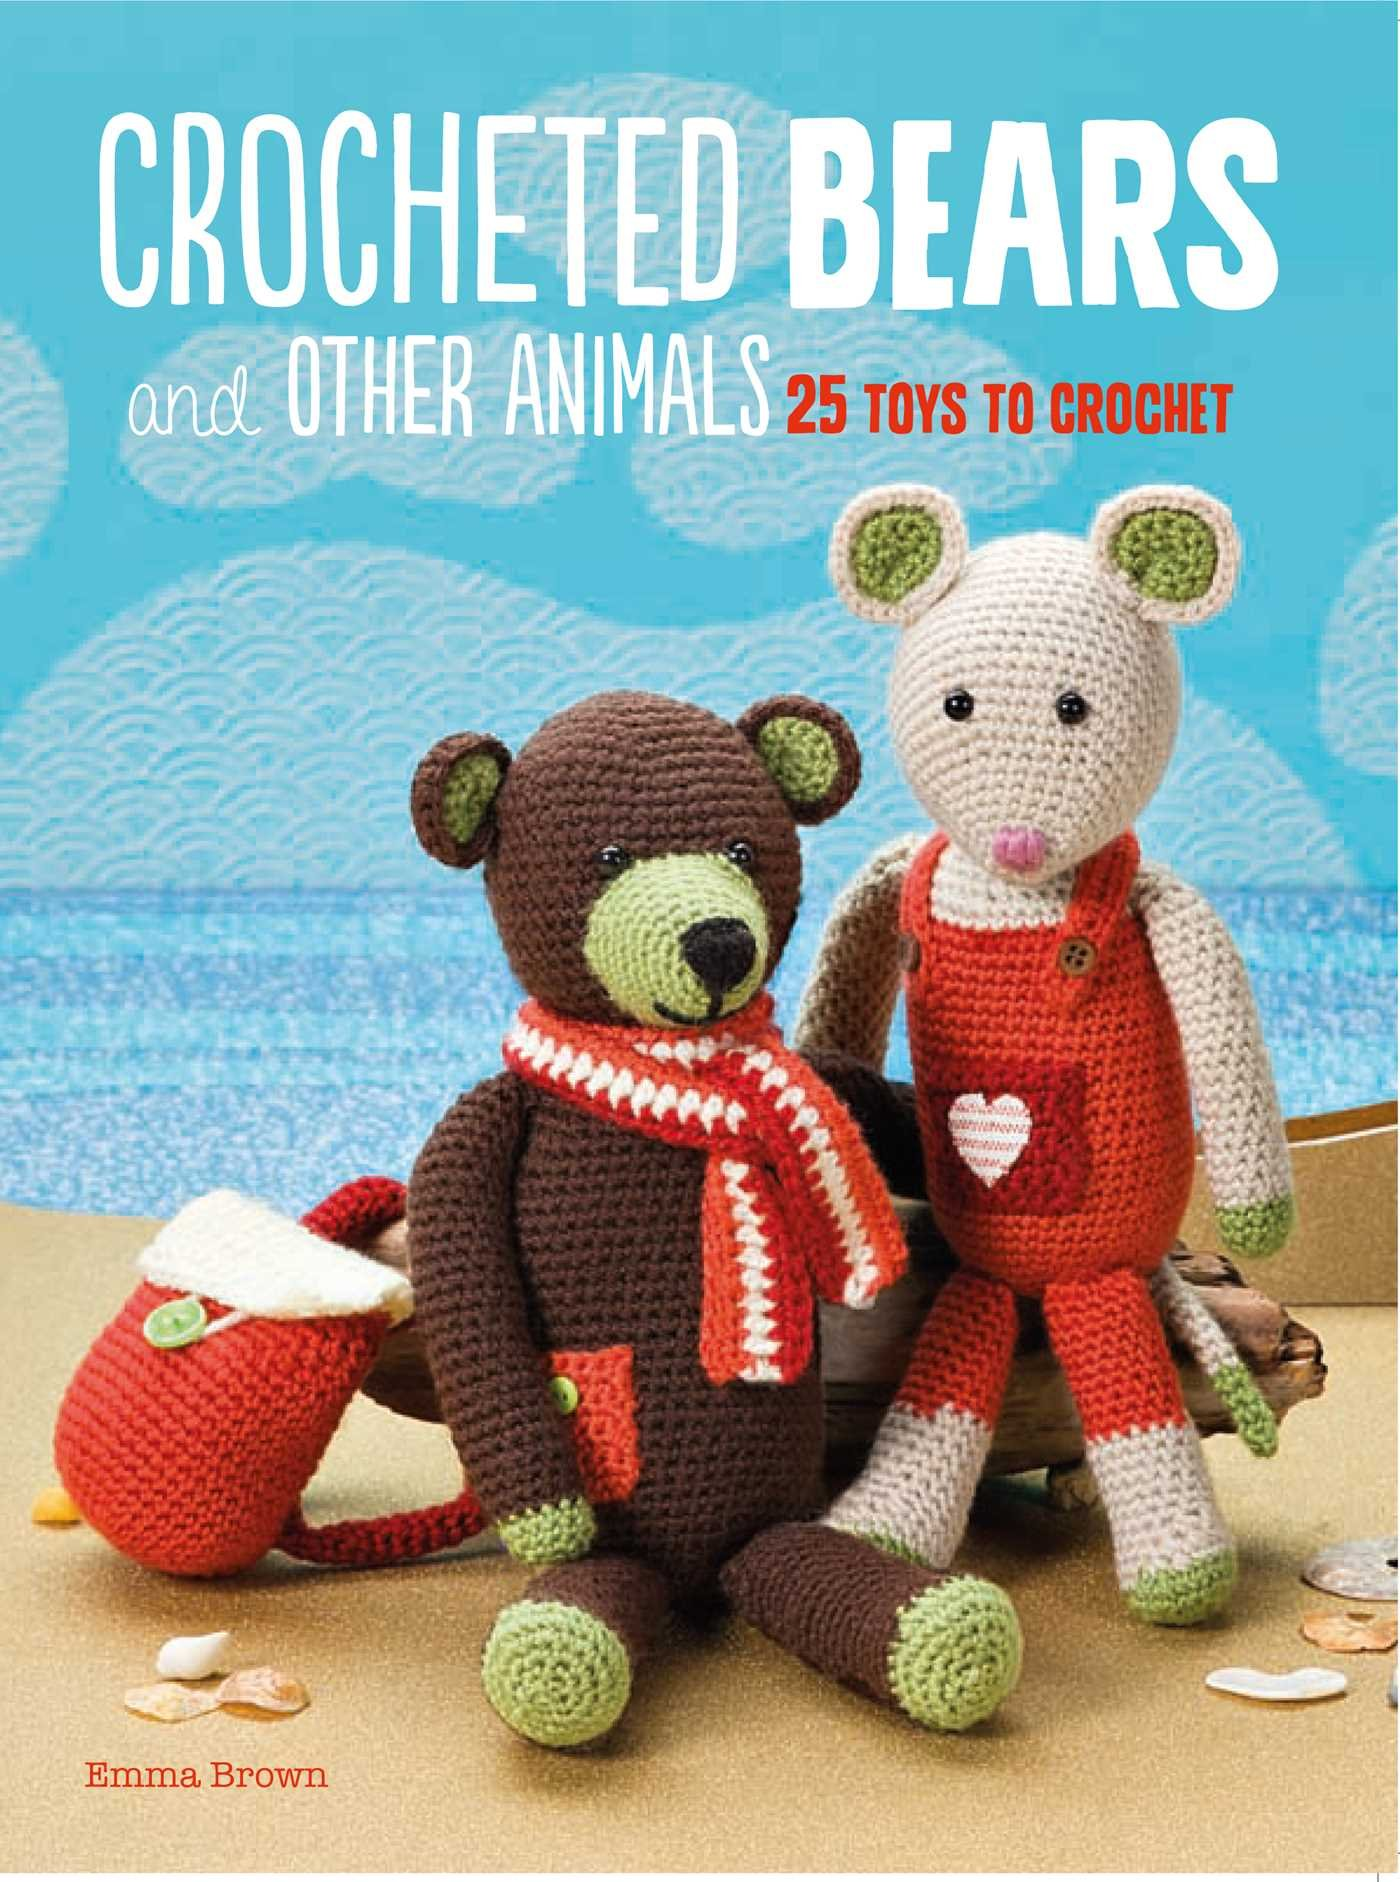 Crocheted bears and other animals 25 toys to crochet emma brown crocheted bears and other animals 25 toys to crochet emma brown 9781782494300 amazon books bankloansurffo Choice Image